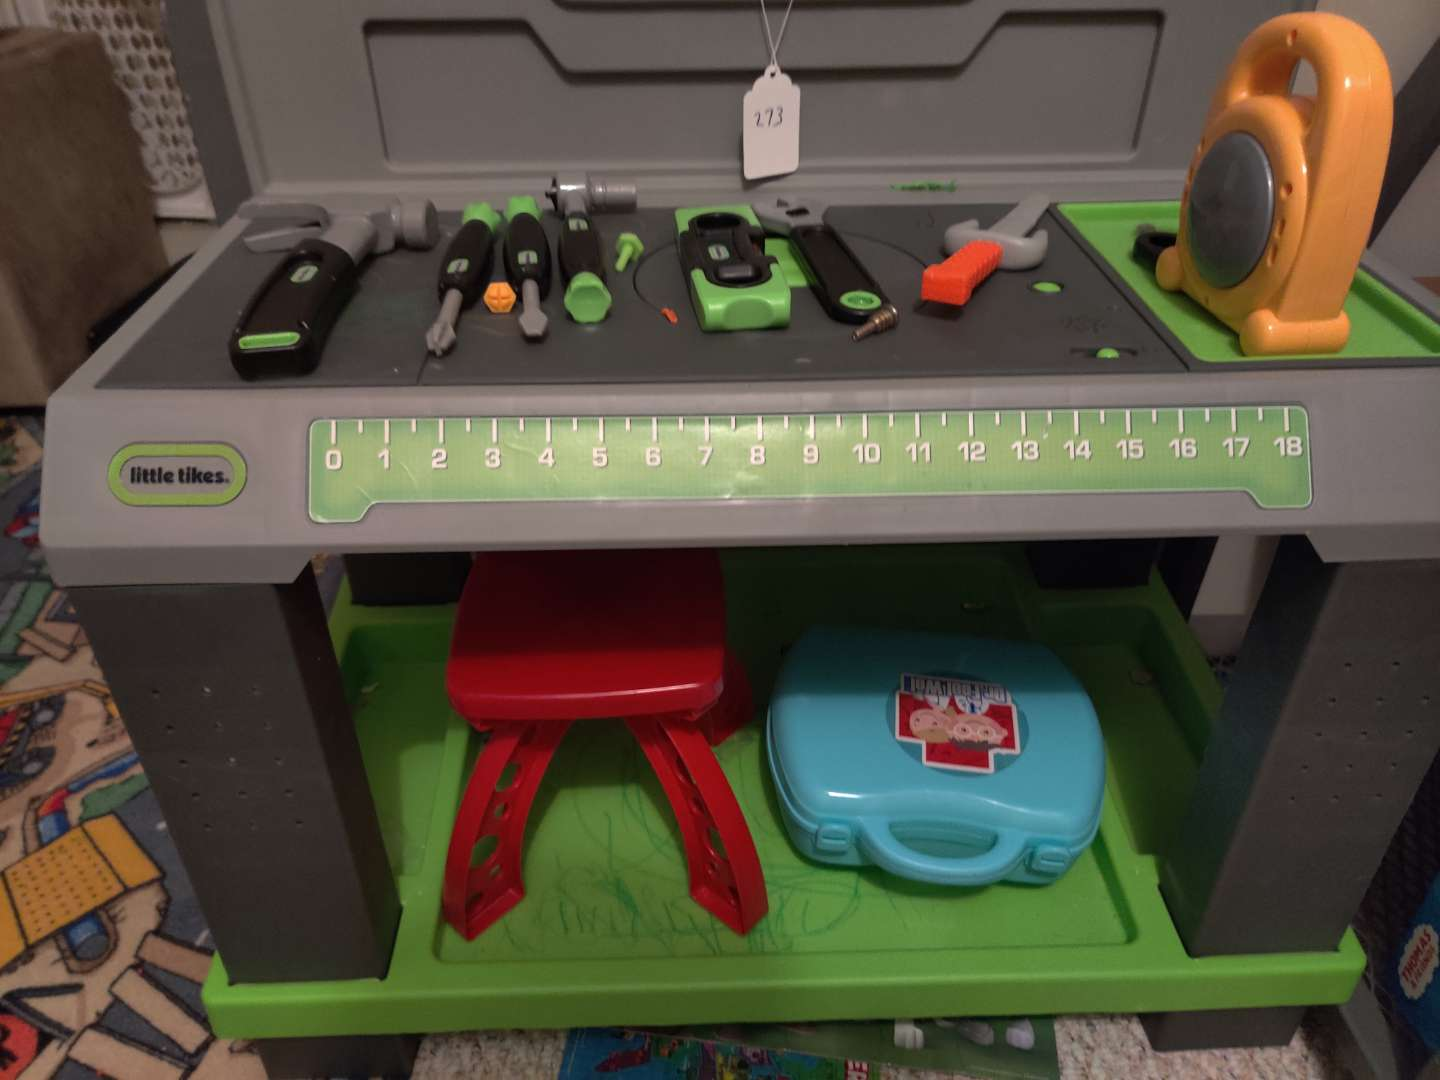 273 Little tikes tool set with stand